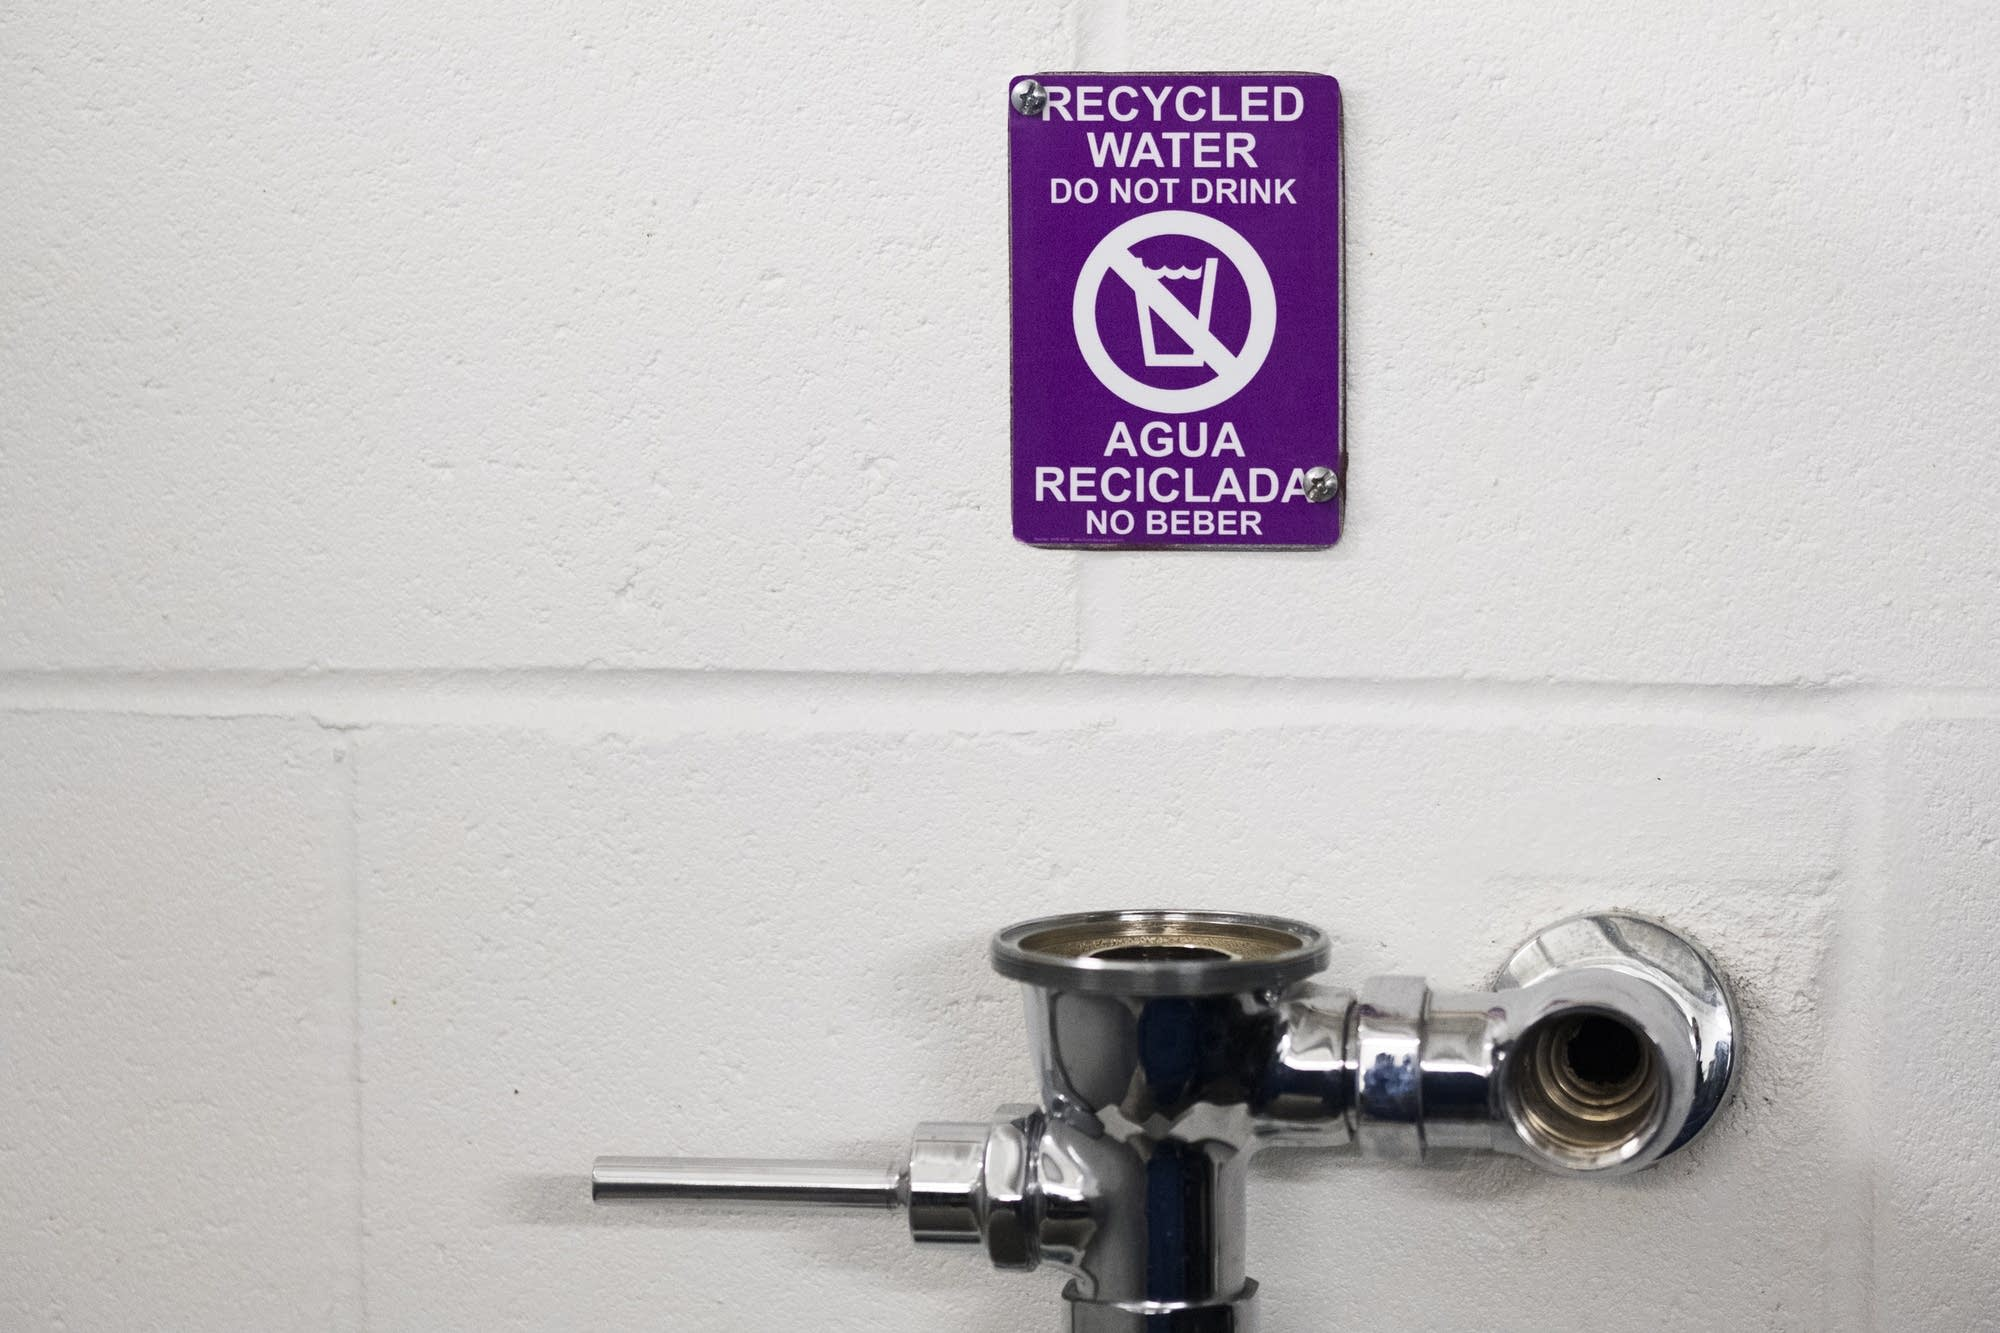 Signs warn fans not to drink from urinals